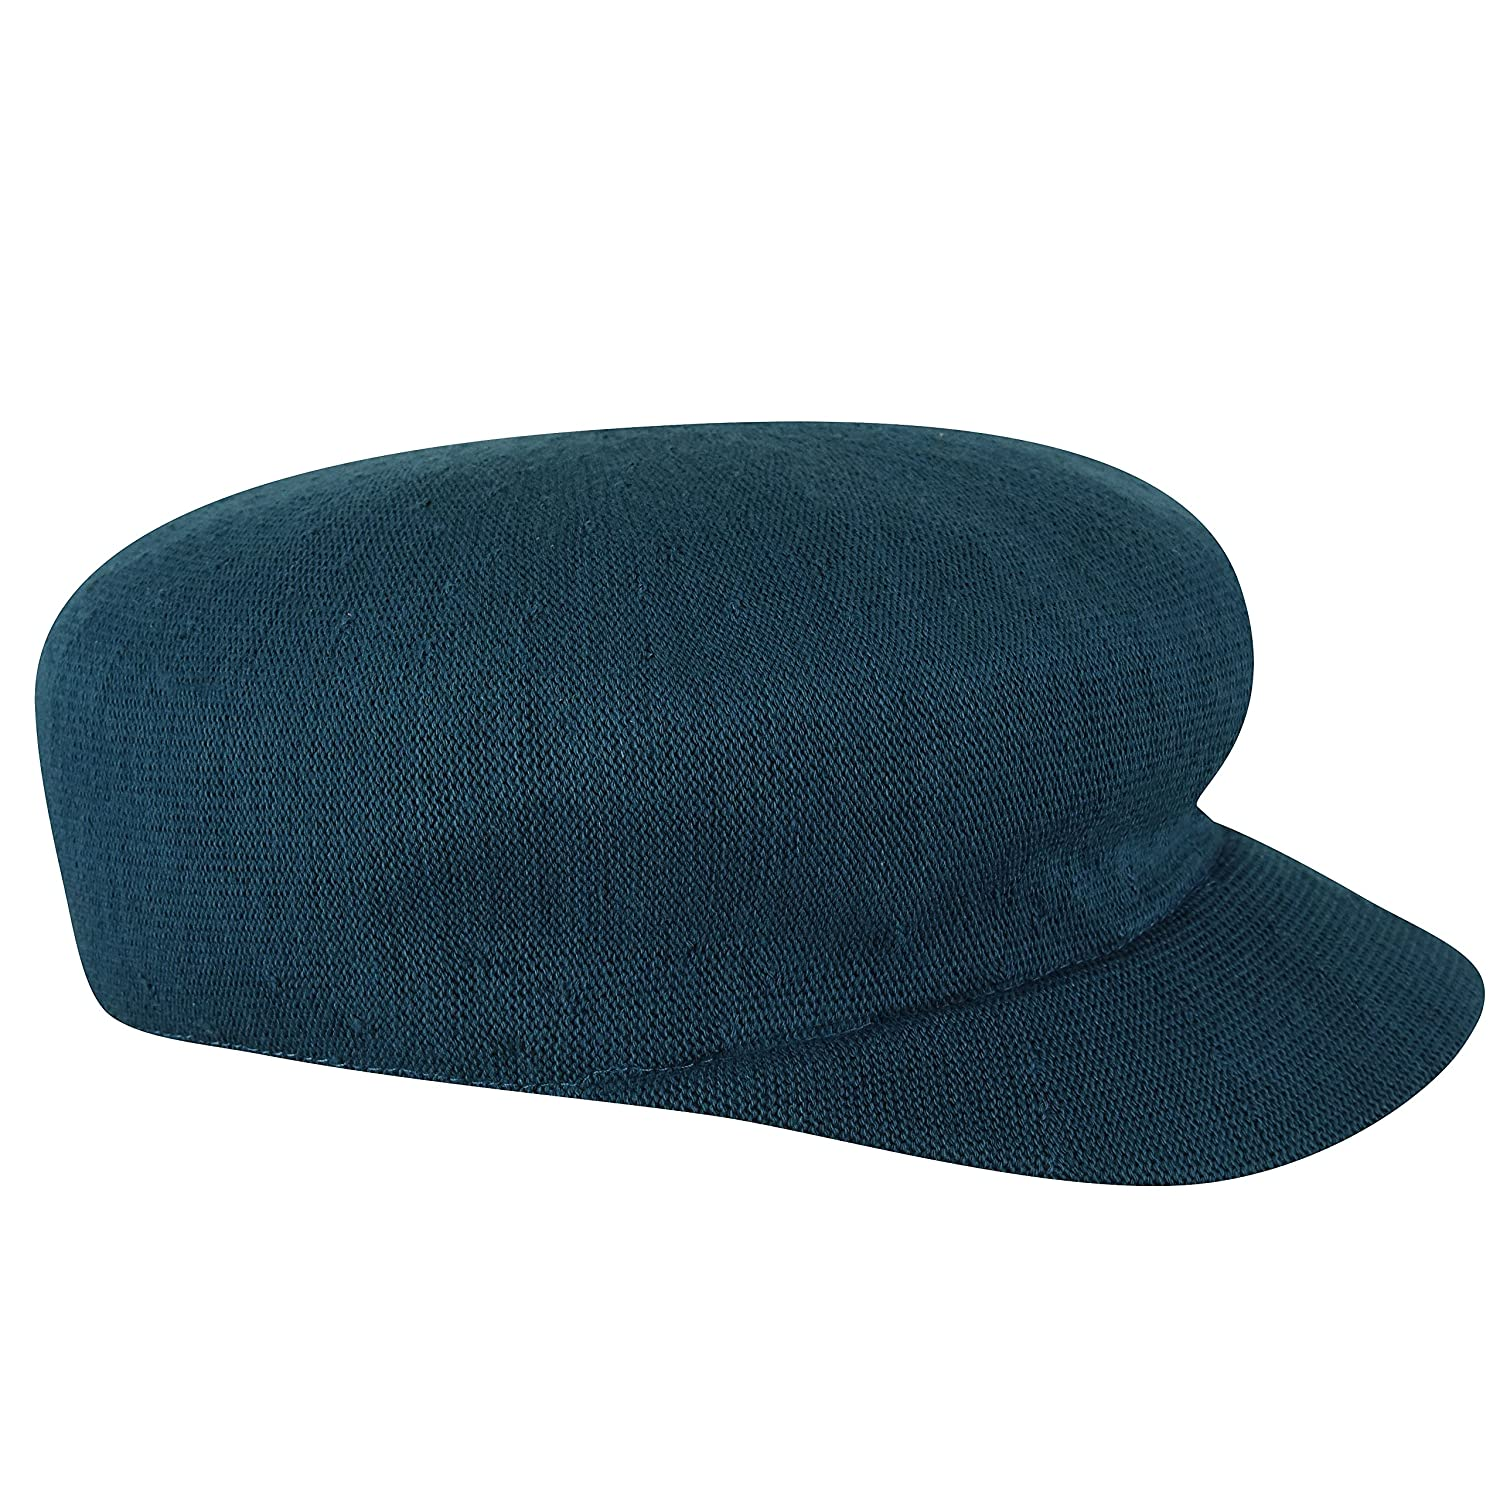 The Kangol Heritage Men s Bamboo Blend Mau Fisherman-Style Cap at Amazon  Men s Clothing store  Newsboy Caps 1445d37f234